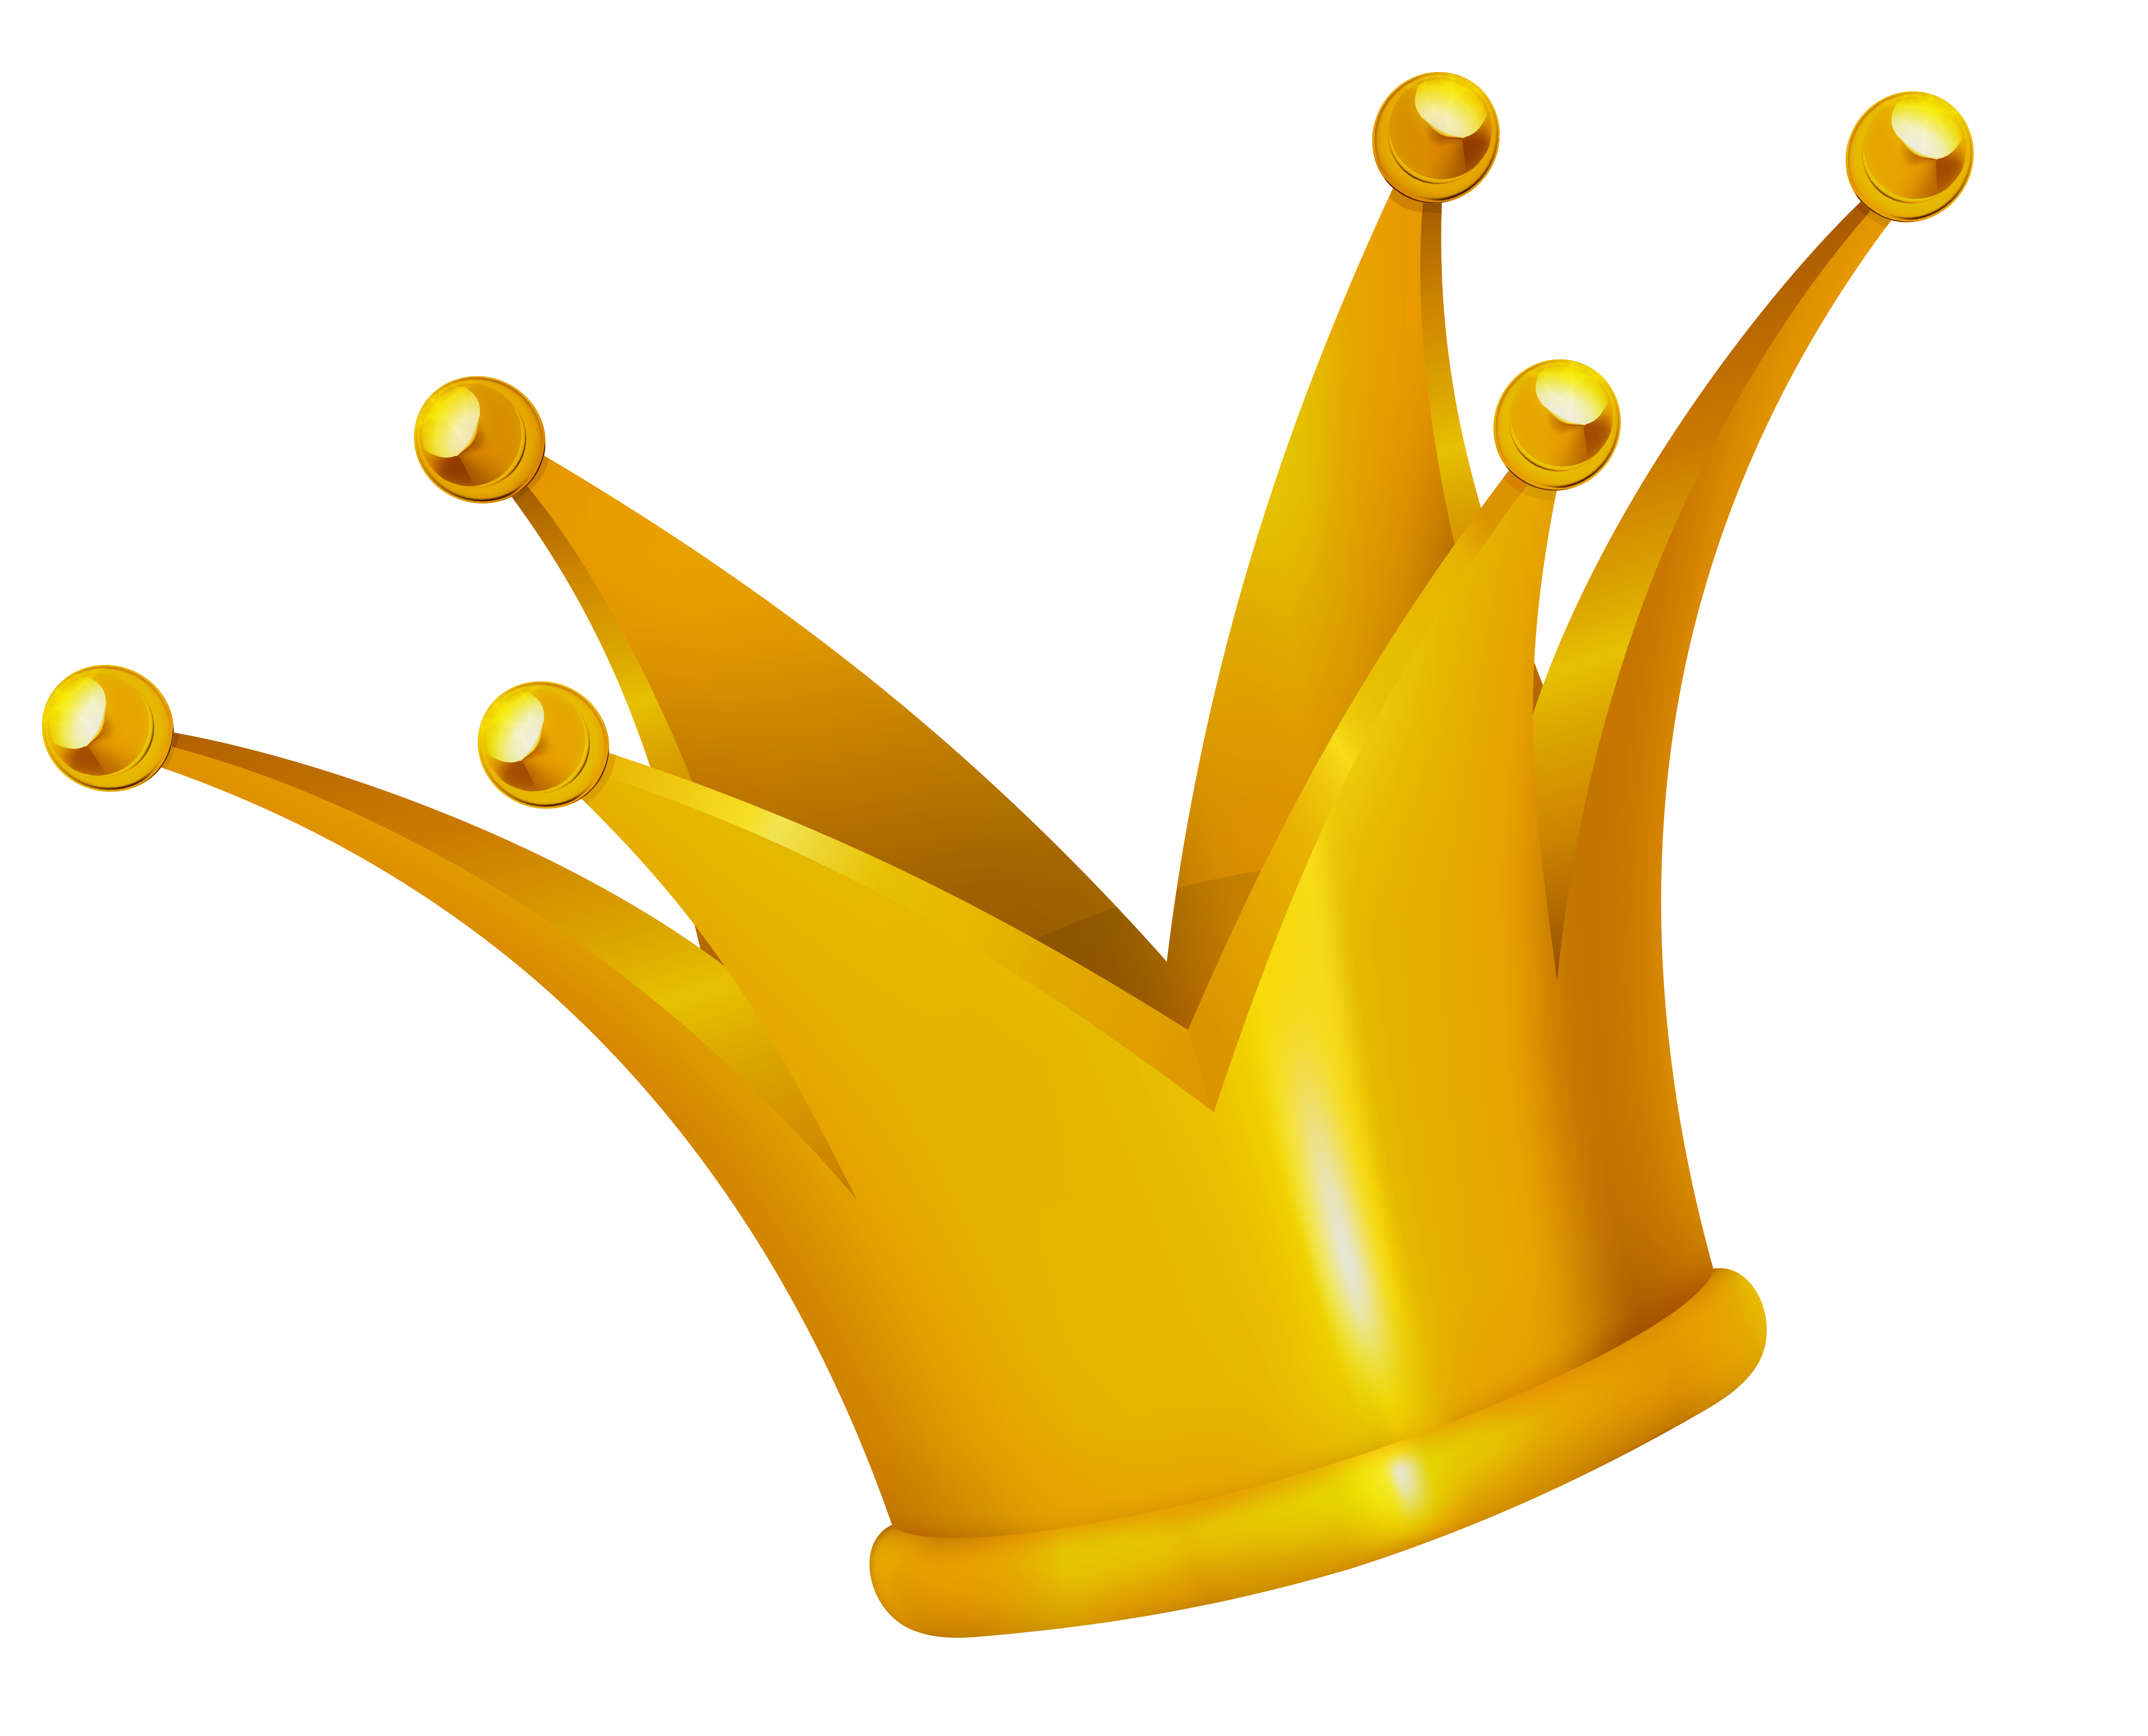 Bell shaped crown clipart - Clipground | 5098 x 4120 png 1567kB